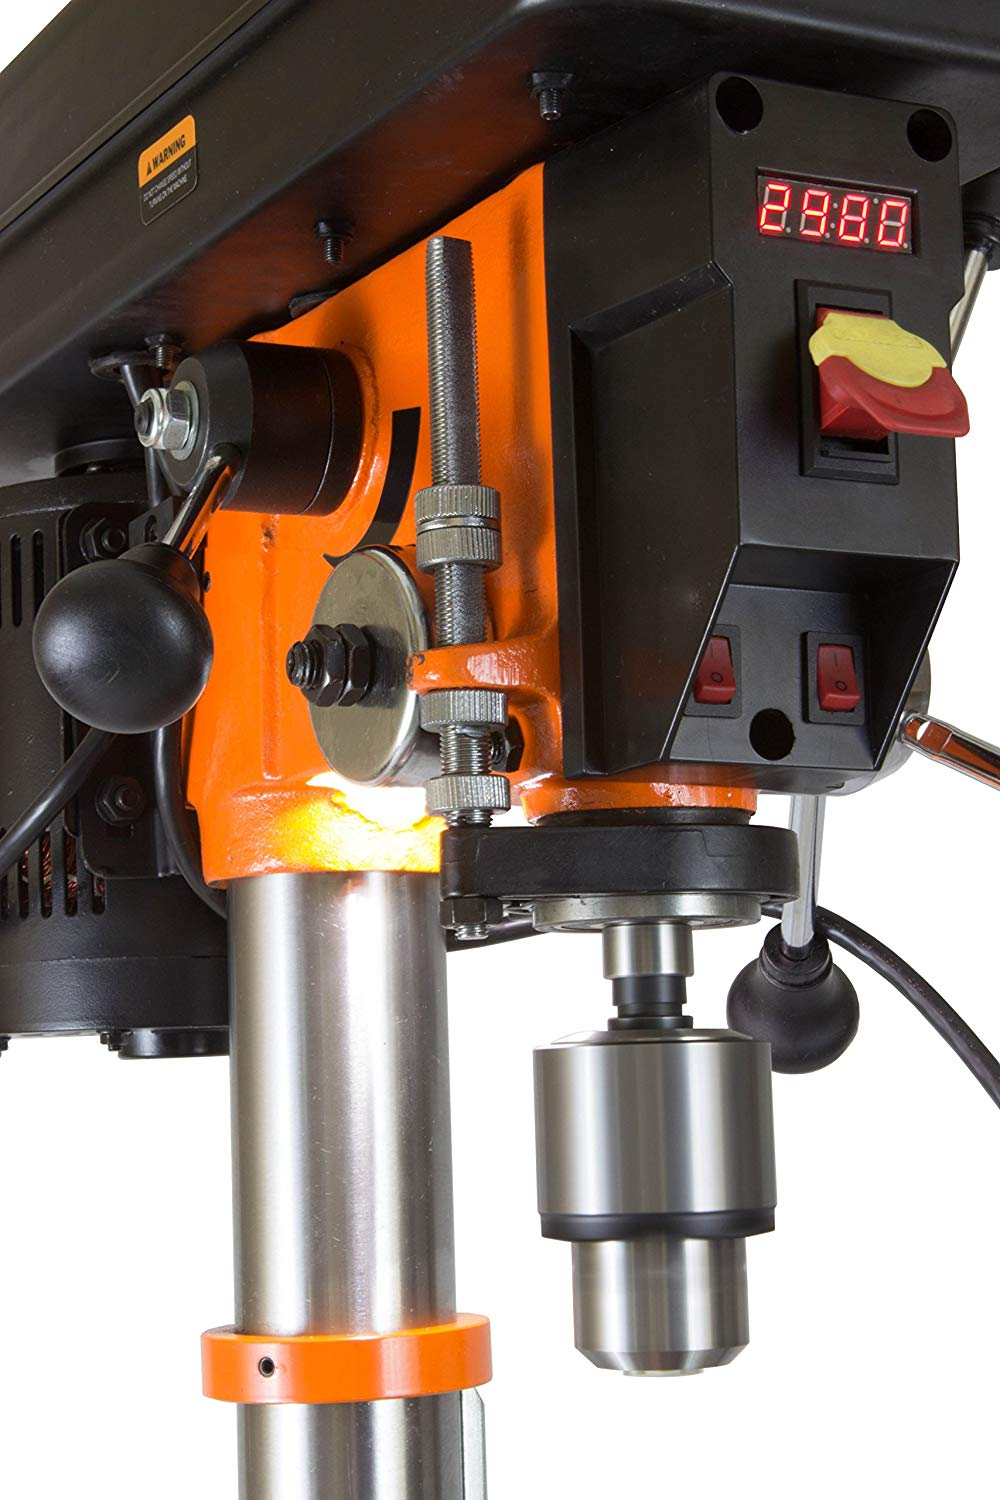 Wen 4214 Drill Press : Complete Review For September 2019